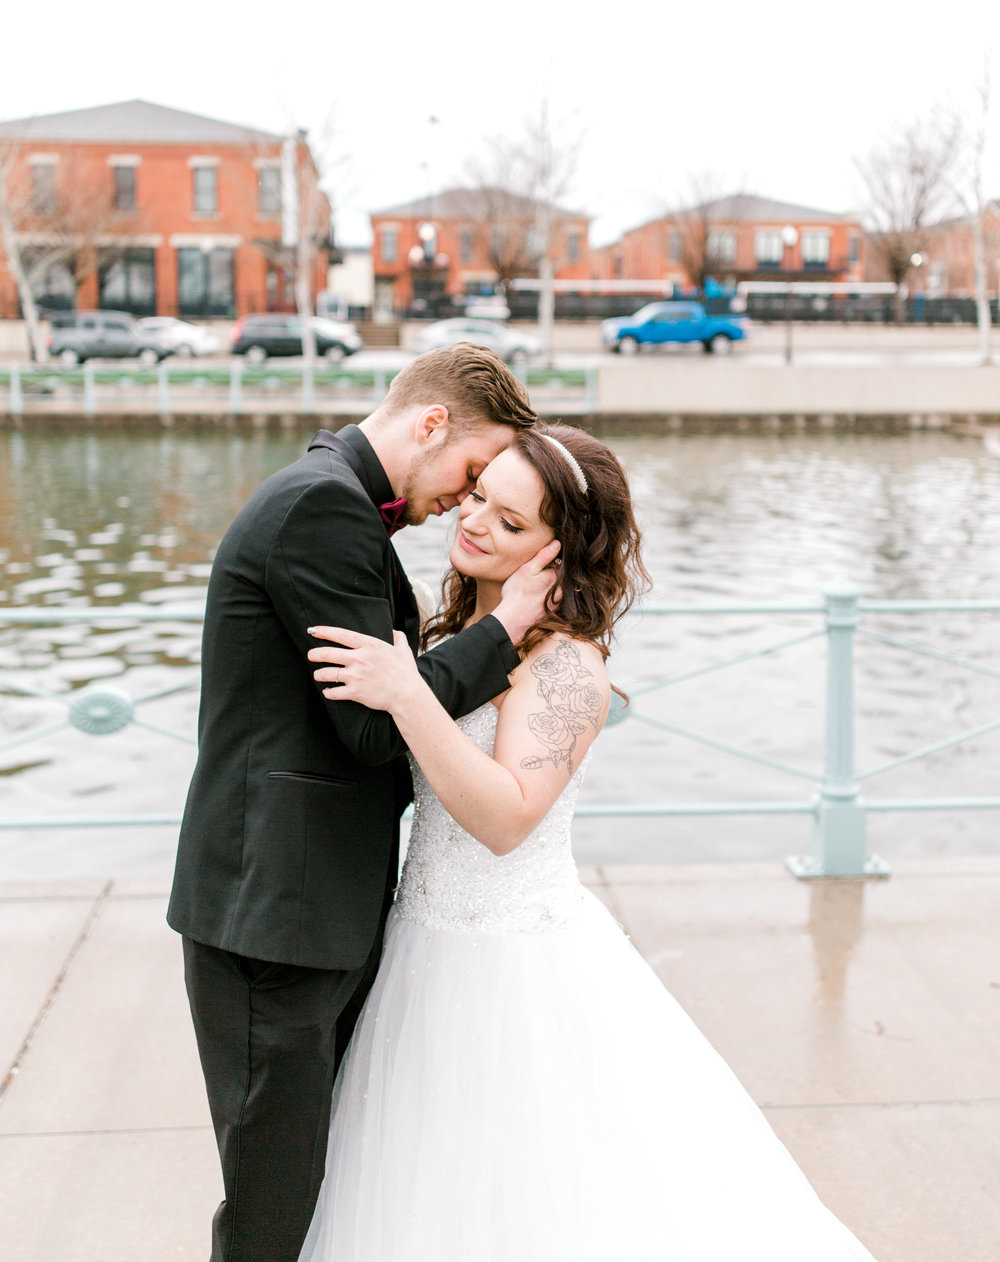 Katelyn + Andy (140 of 470).jpg